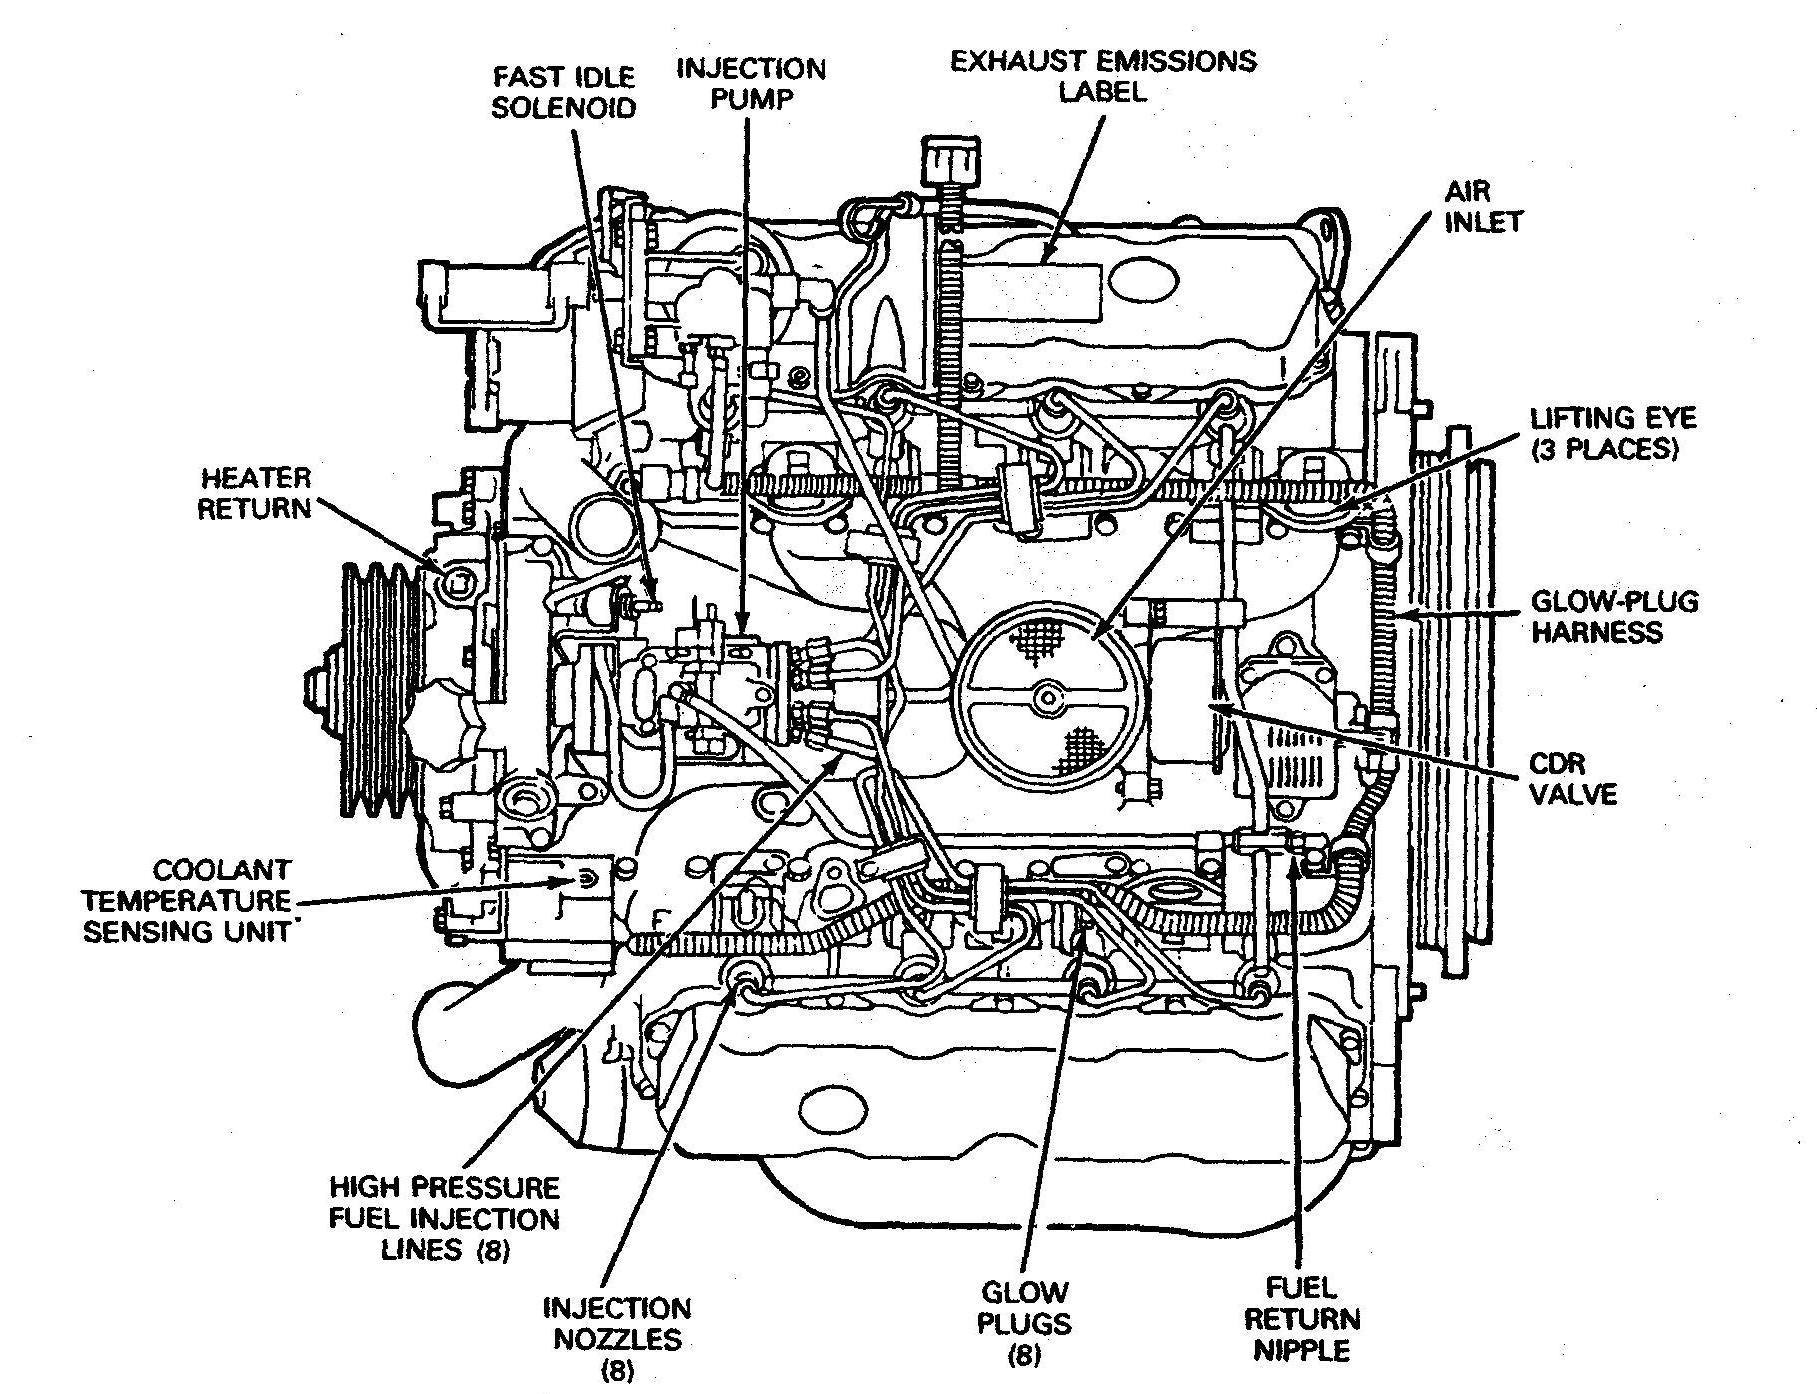 hight resolution of ford 3 0 v6 engine diagram my wiring diagram admiral dryer repair manual admiral dryer parts